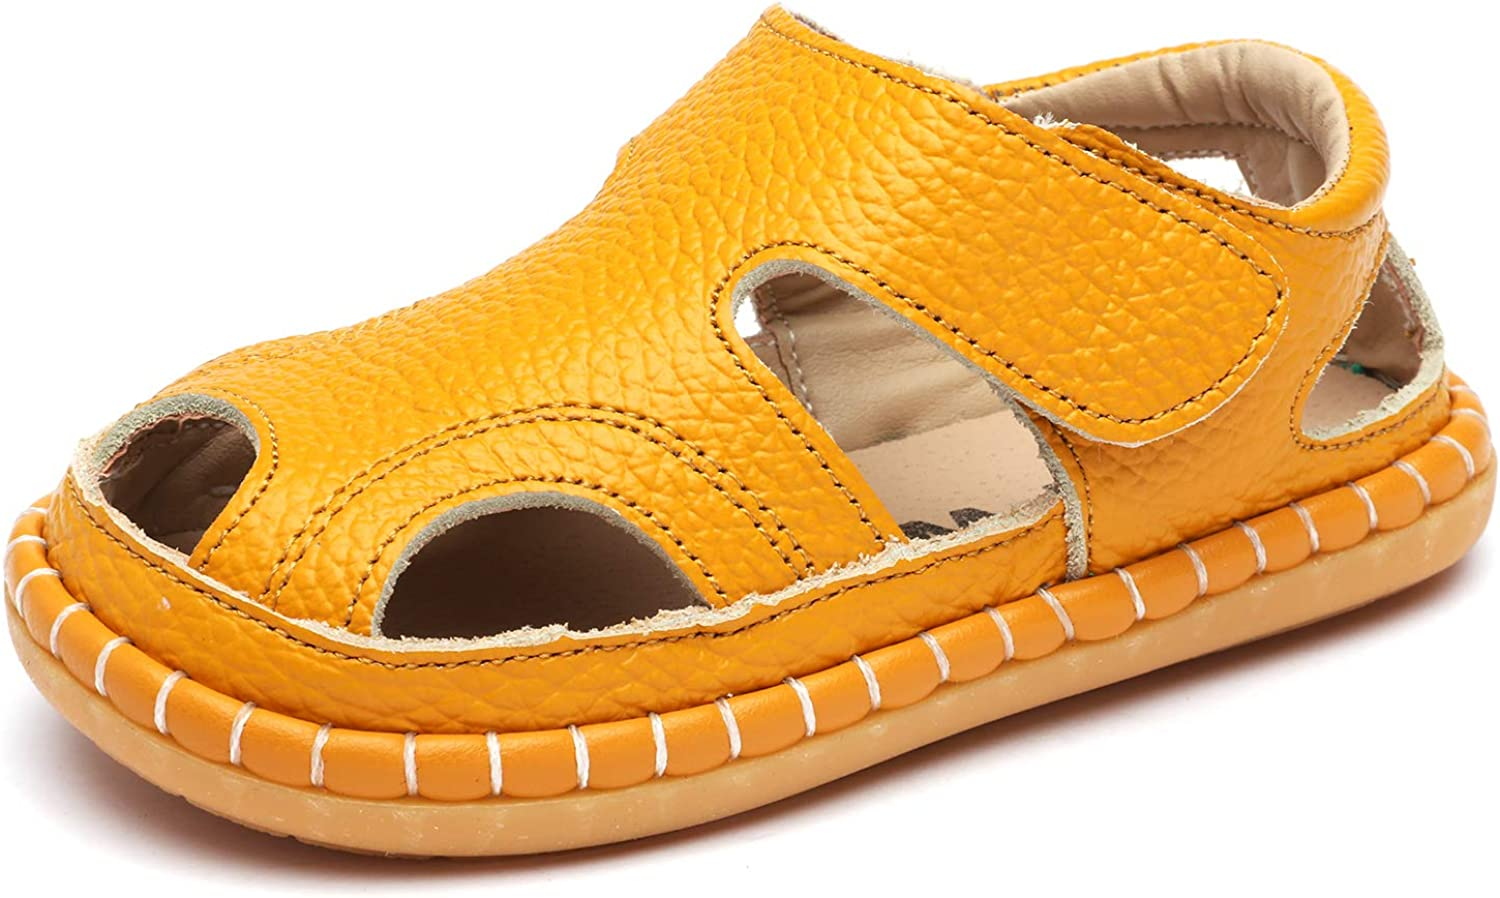 Stylein Japan Maker New Boys Girls Aquatic Max 88% OFF Water Shoes Ath Walking Beach Outdoor